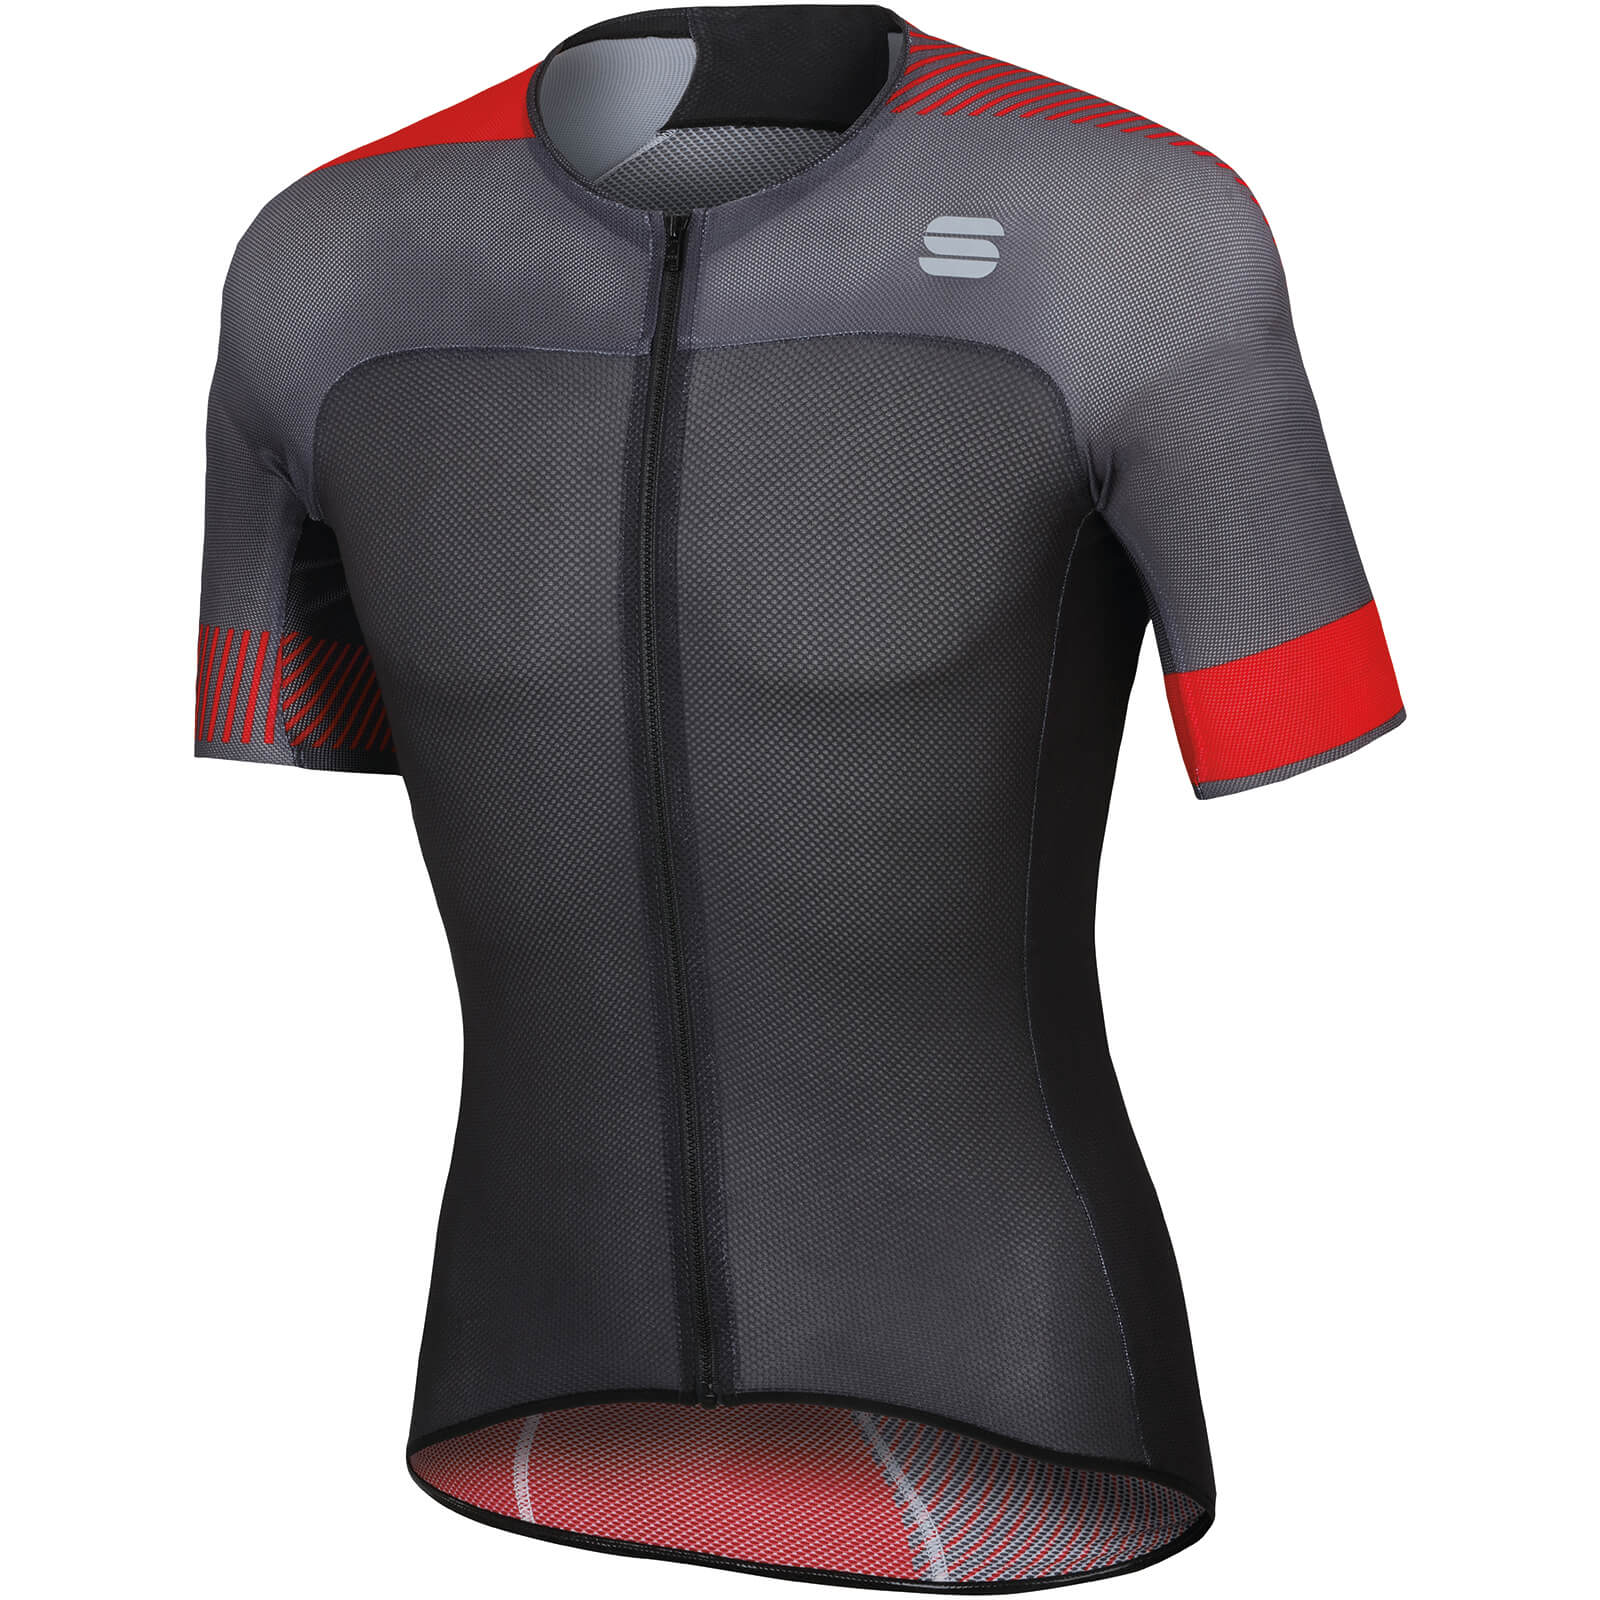 Sportful BodyFit Pro Light Jersey - Anthracite/Black/Red